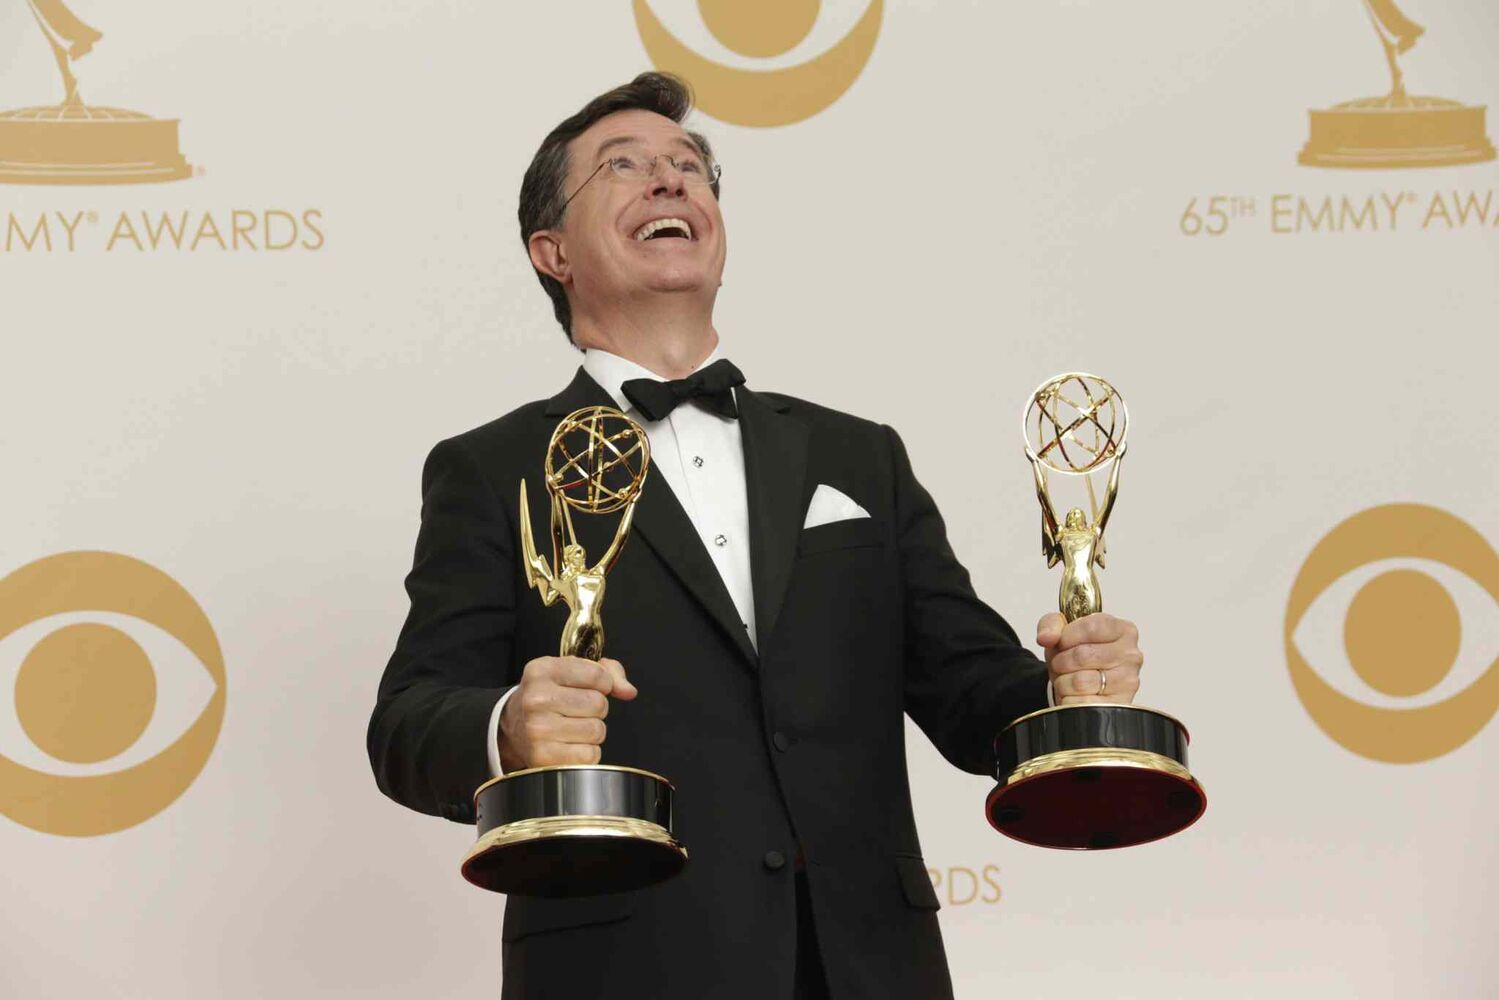 Stephen Colbert wins Outstanding Variety, Music Or Comedy Series.